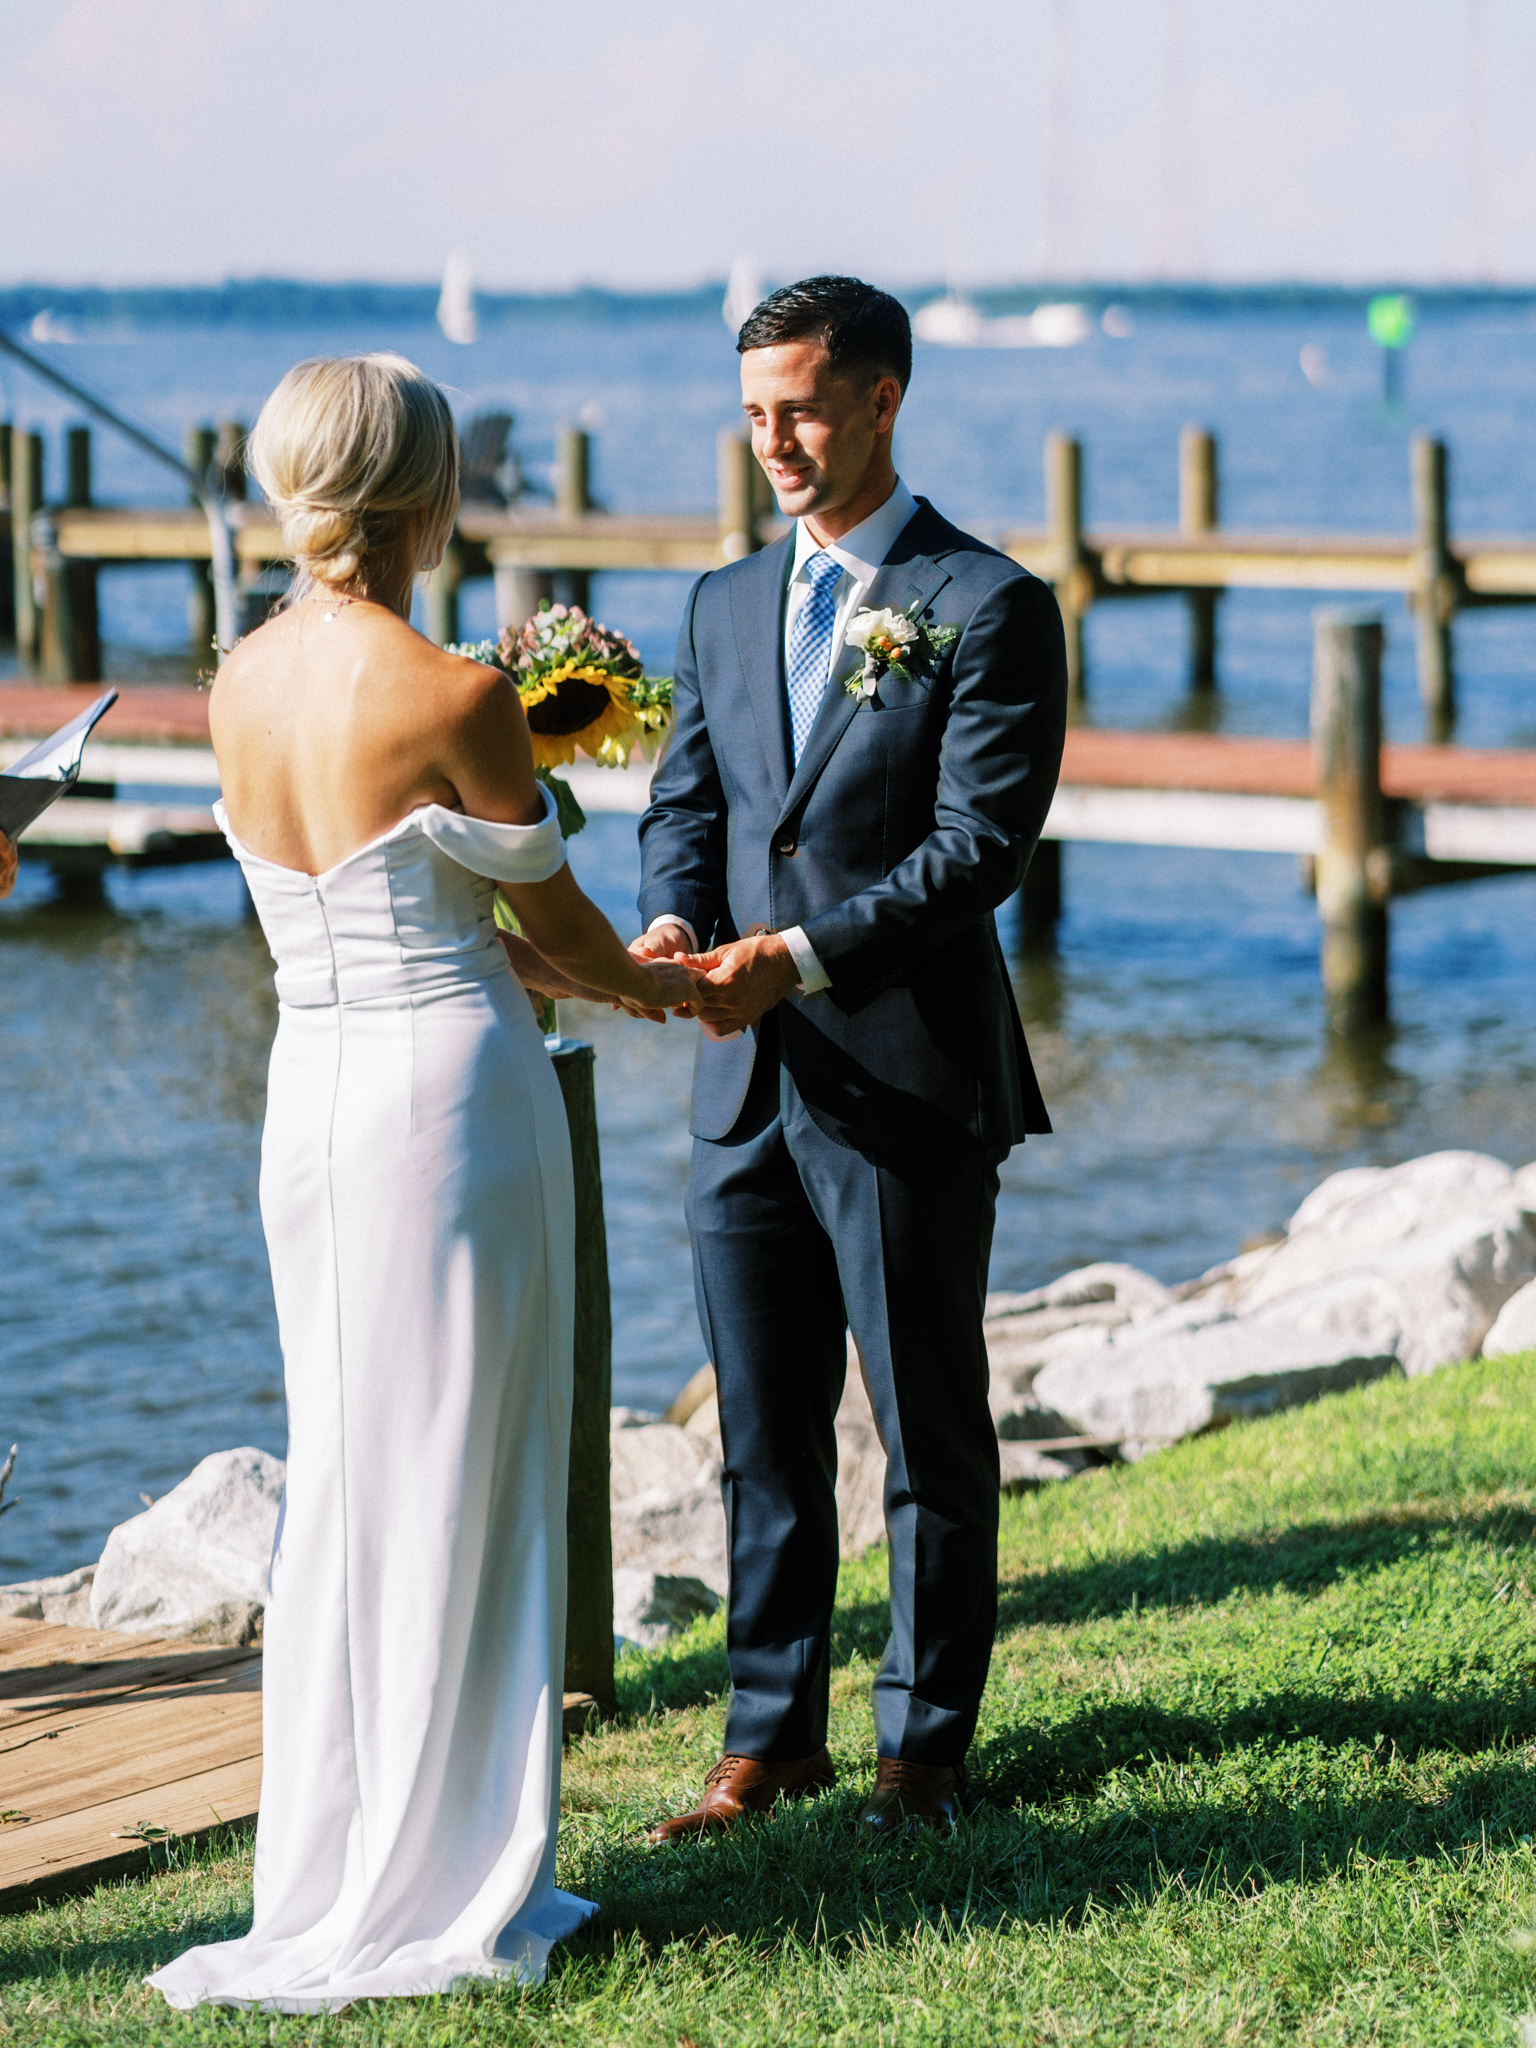 Gray_Joiner_e. losinio photography_annapolis-maryland-waterfront-elopement-129